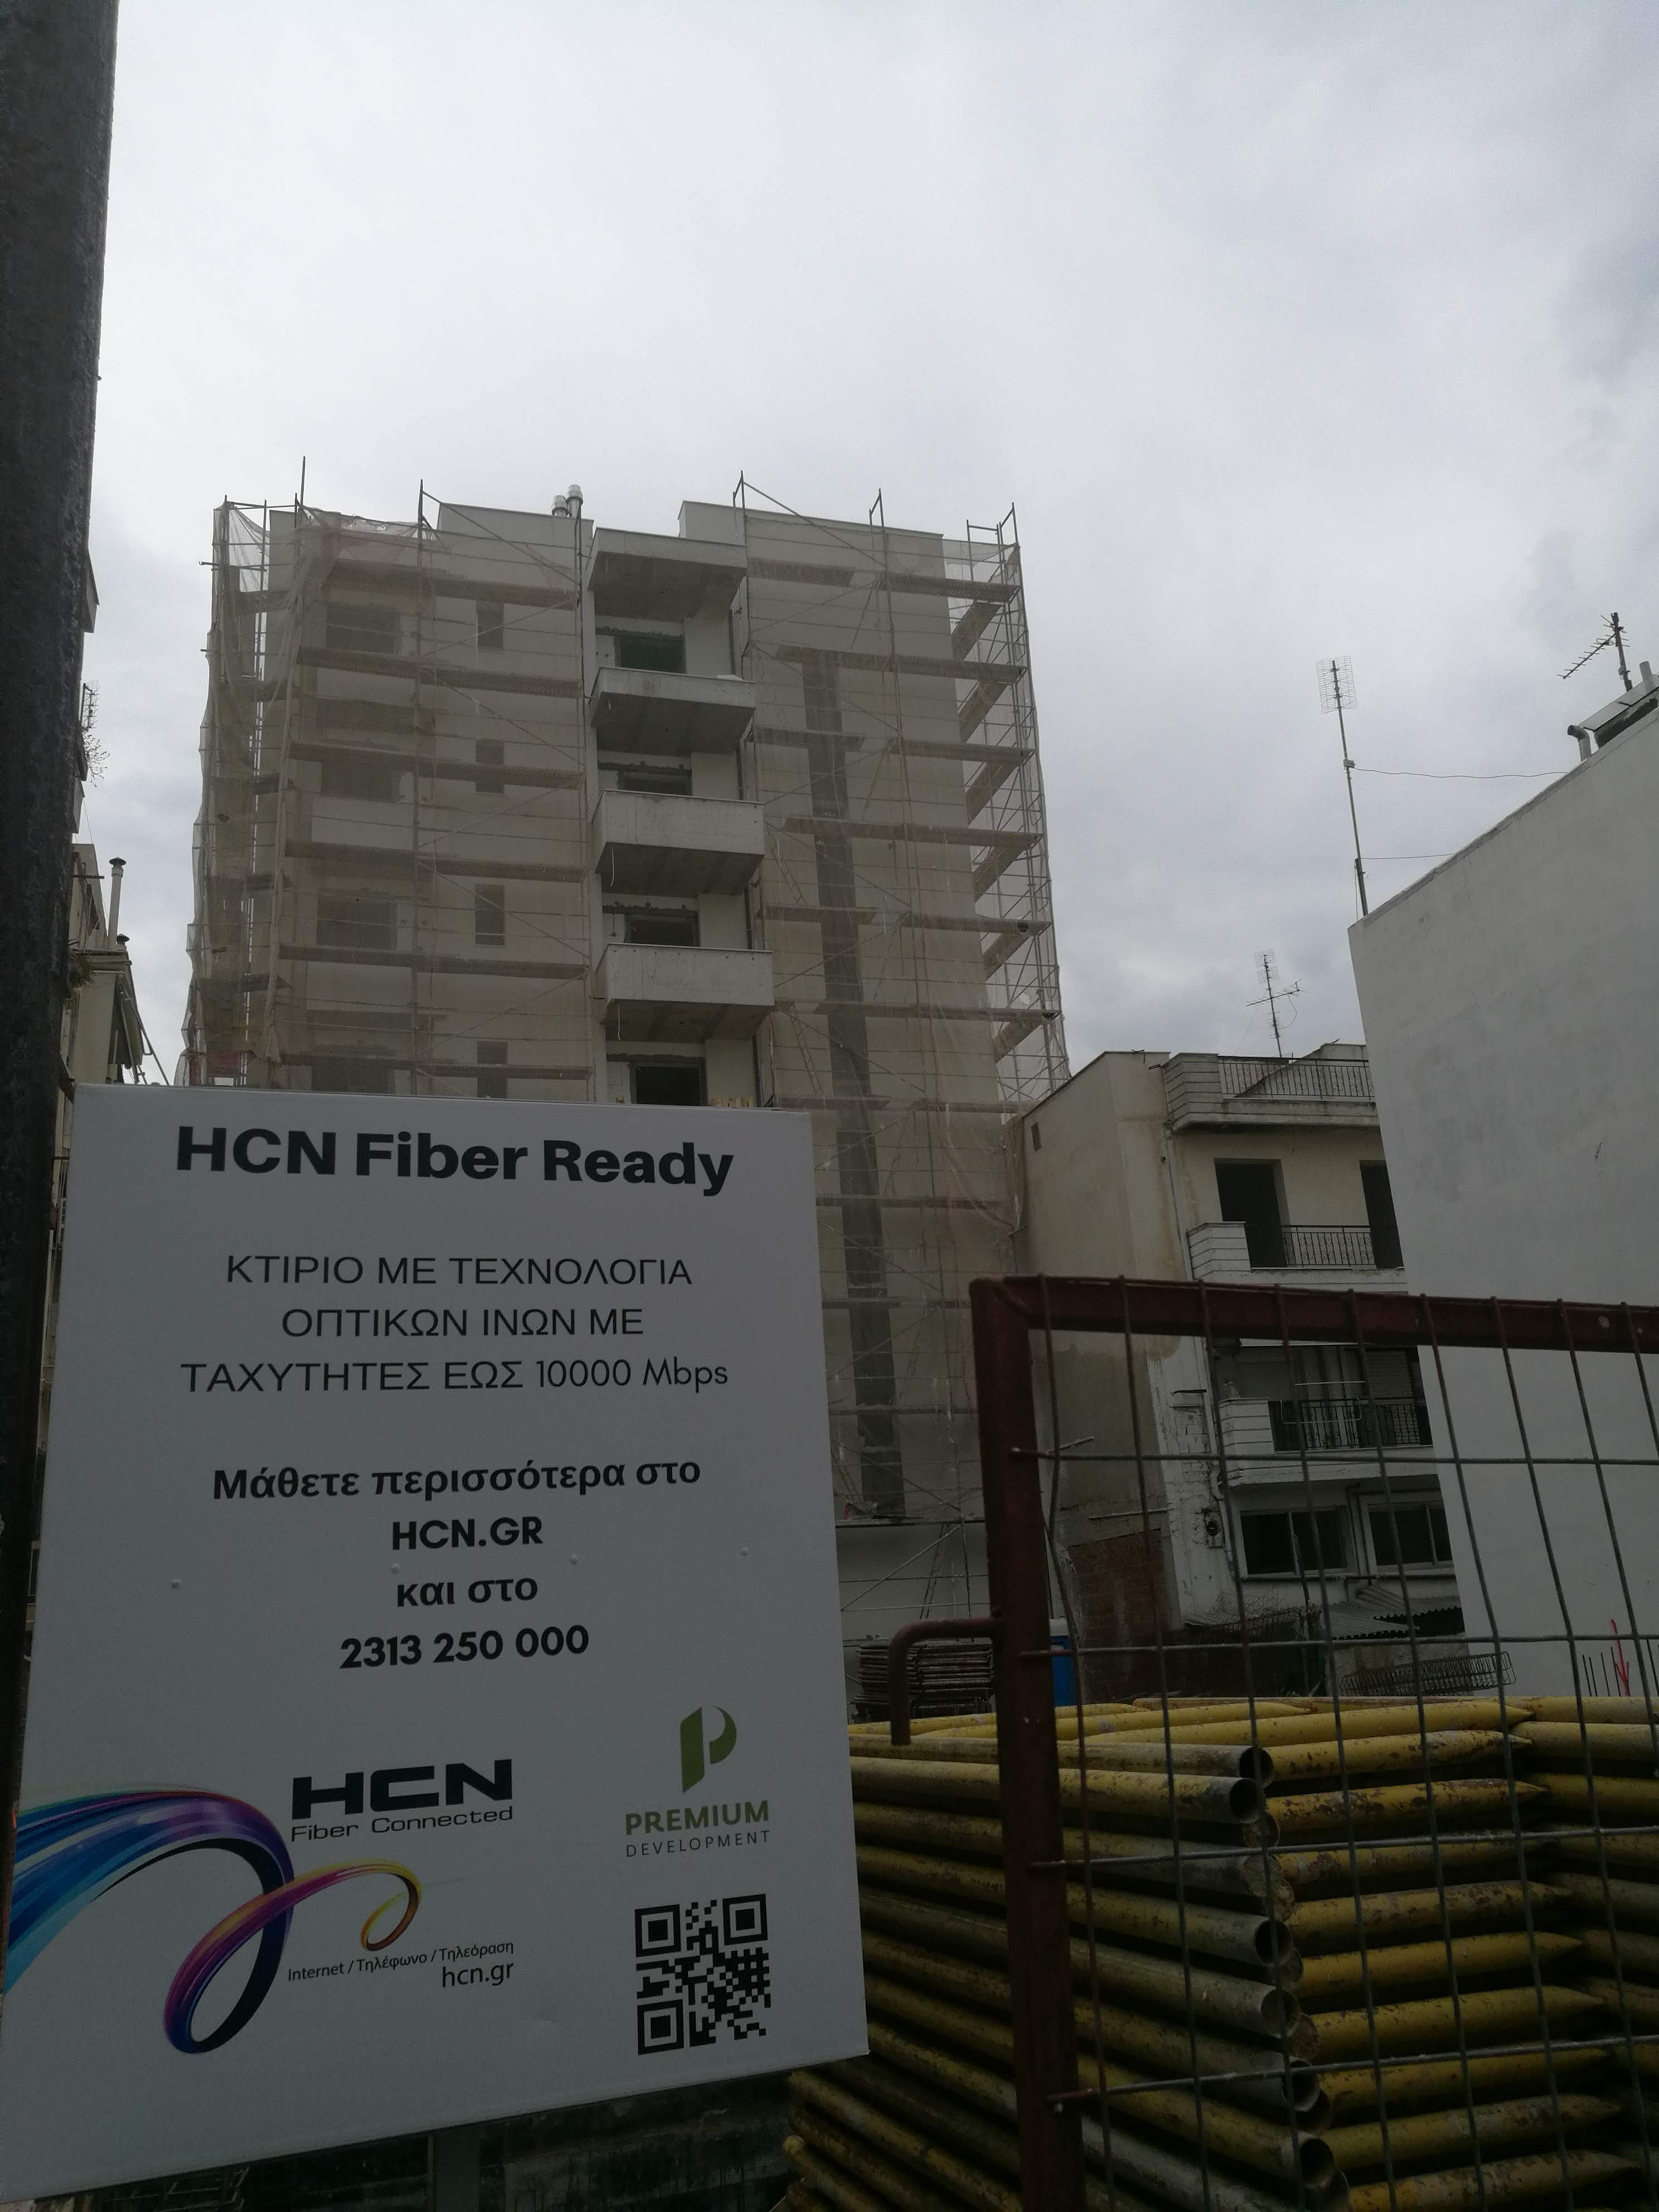 HCN FIBER READY BUILDINGS